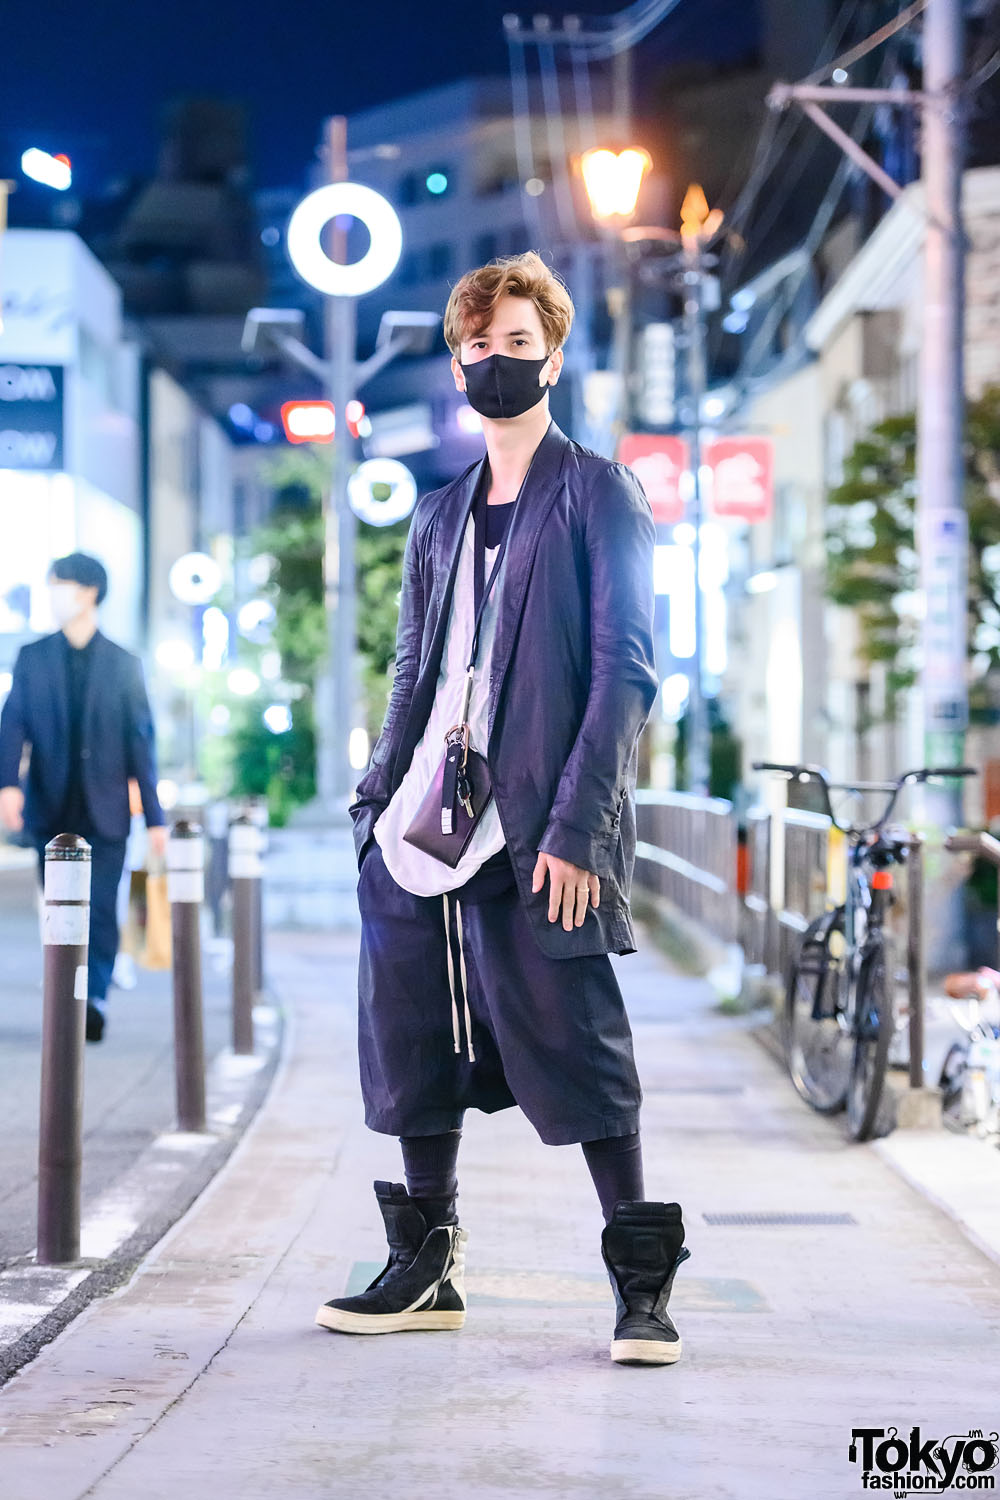 Rick Owens Monochrome Tokyo Street Style w/ Face Mask, Neck Wallet, Twice Keychain, Layered Shirts & Suede High Top Sneakers